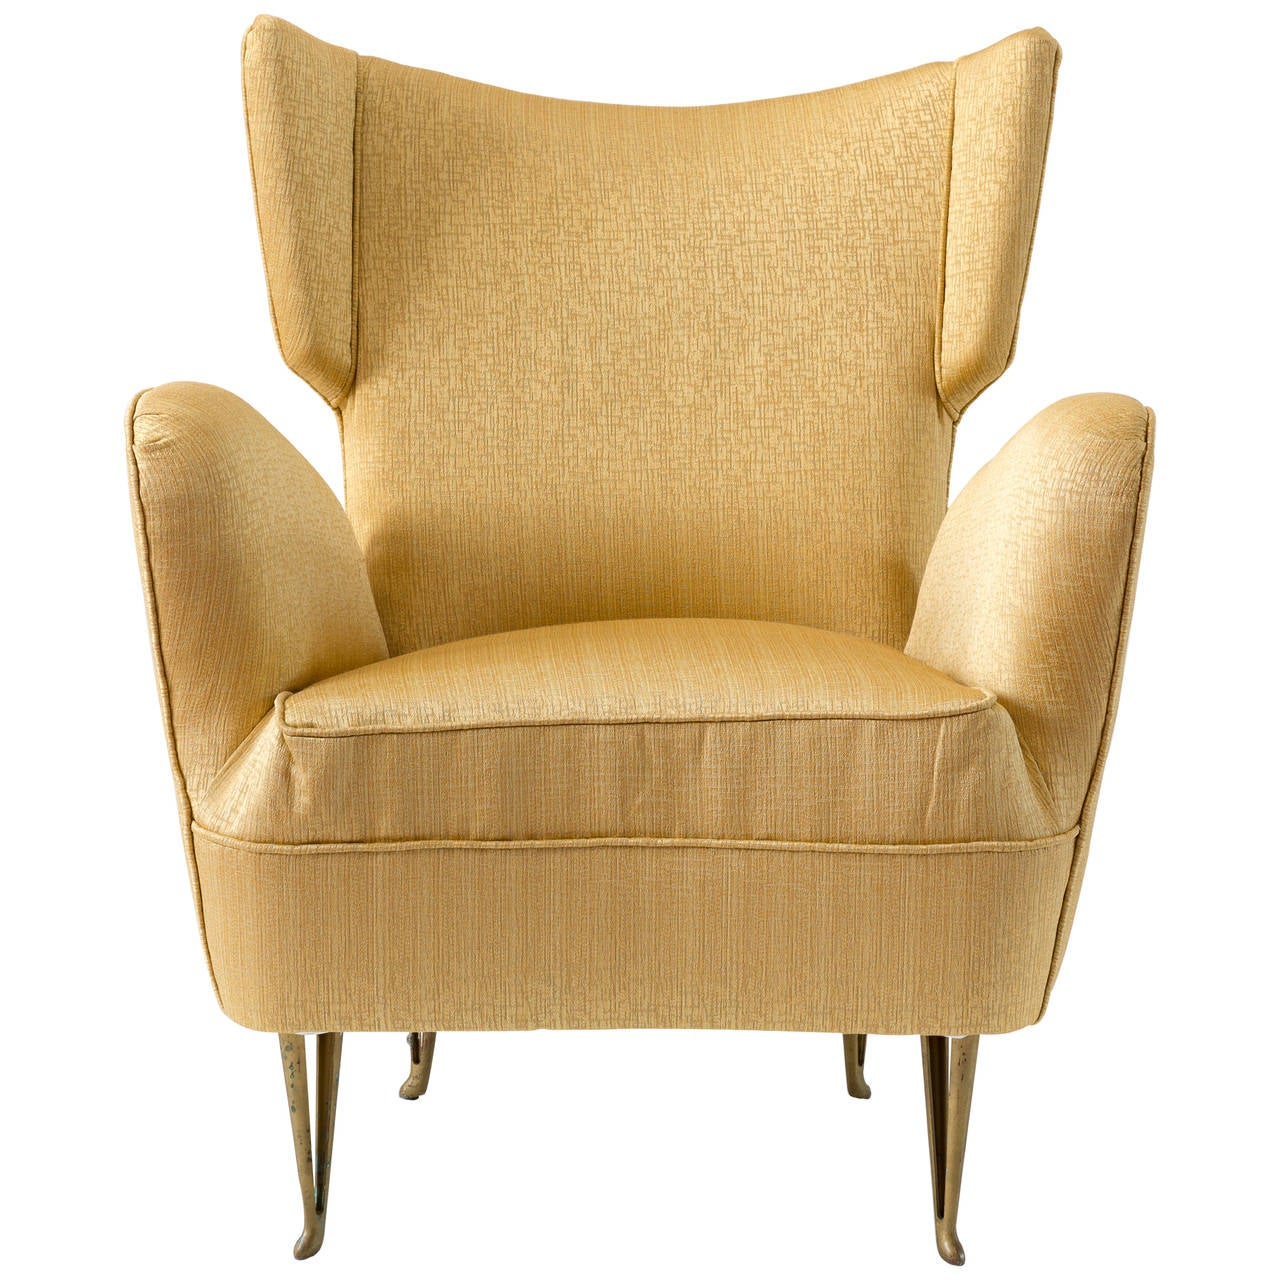 Armchair produced by Arredamenti ISA Bergamo, 1950